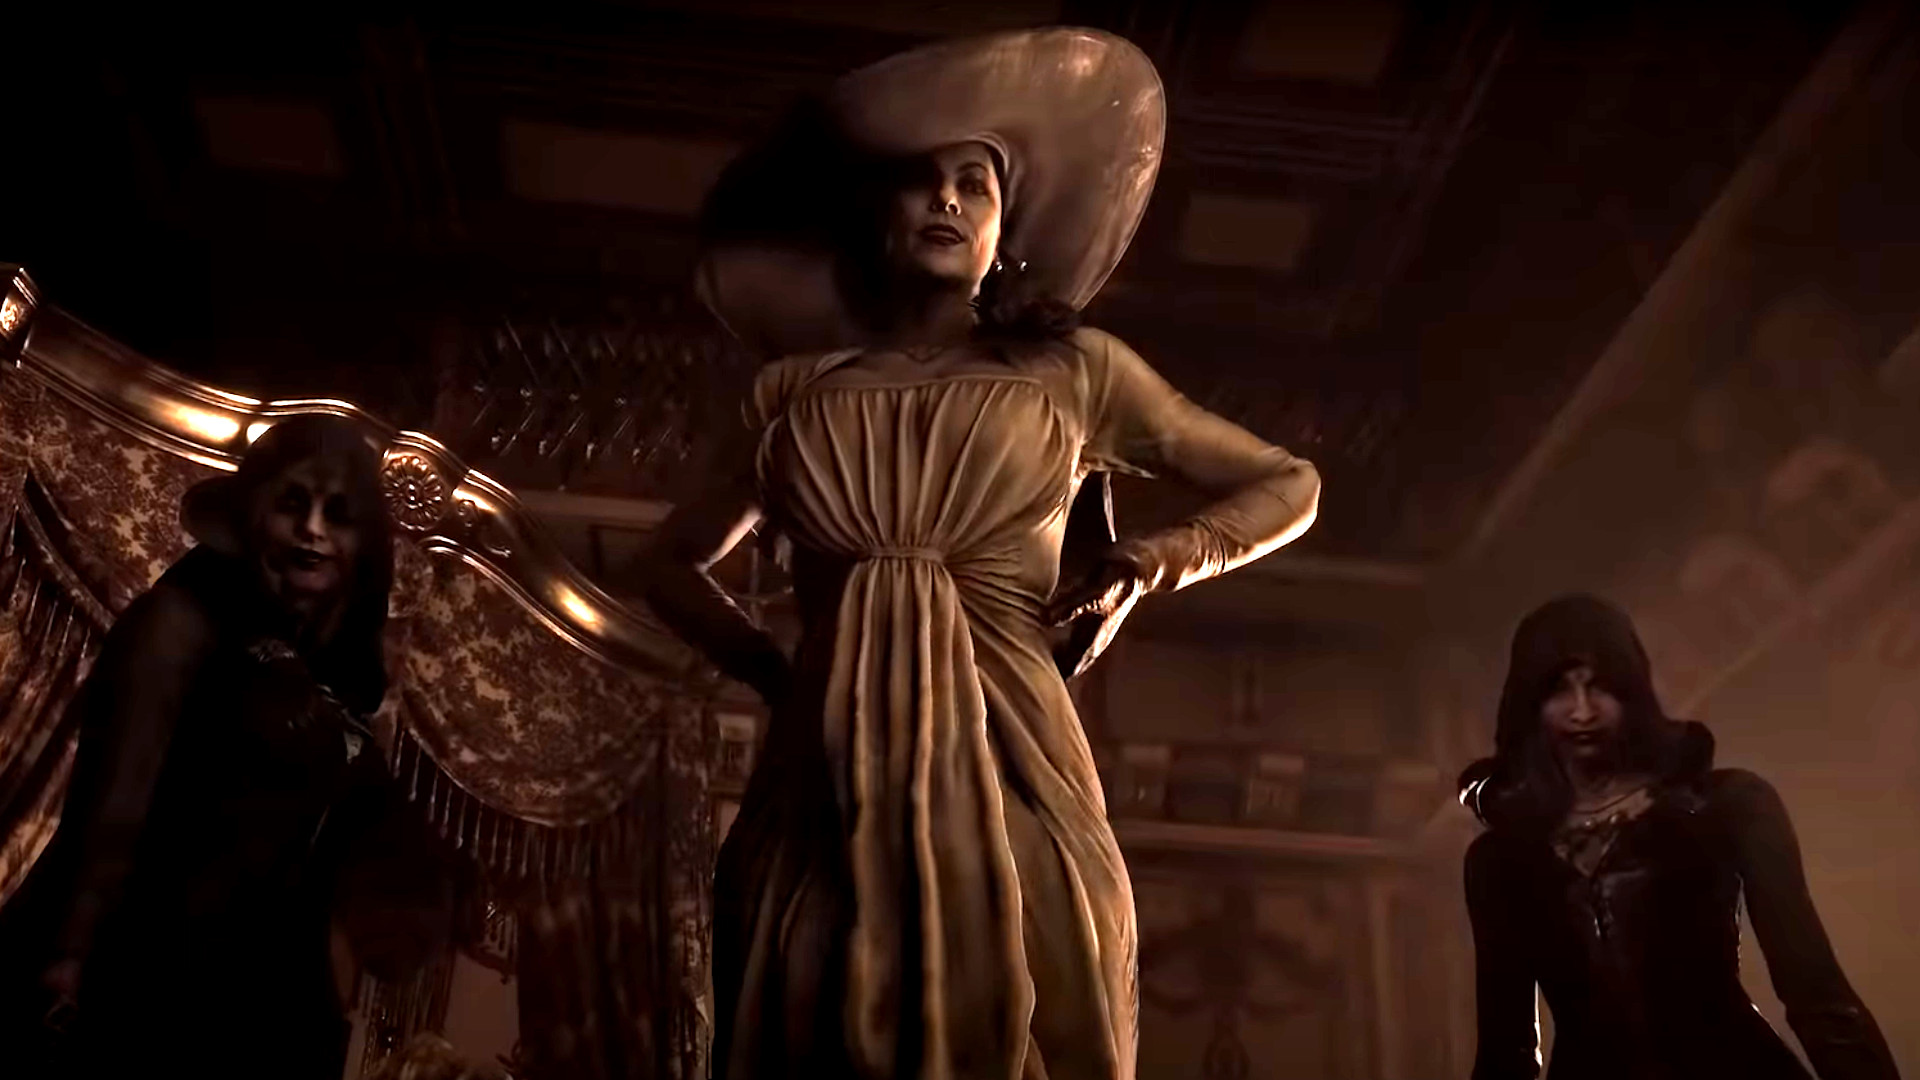 Resident Evil 8's giant woman has put the entire internet in horny jail